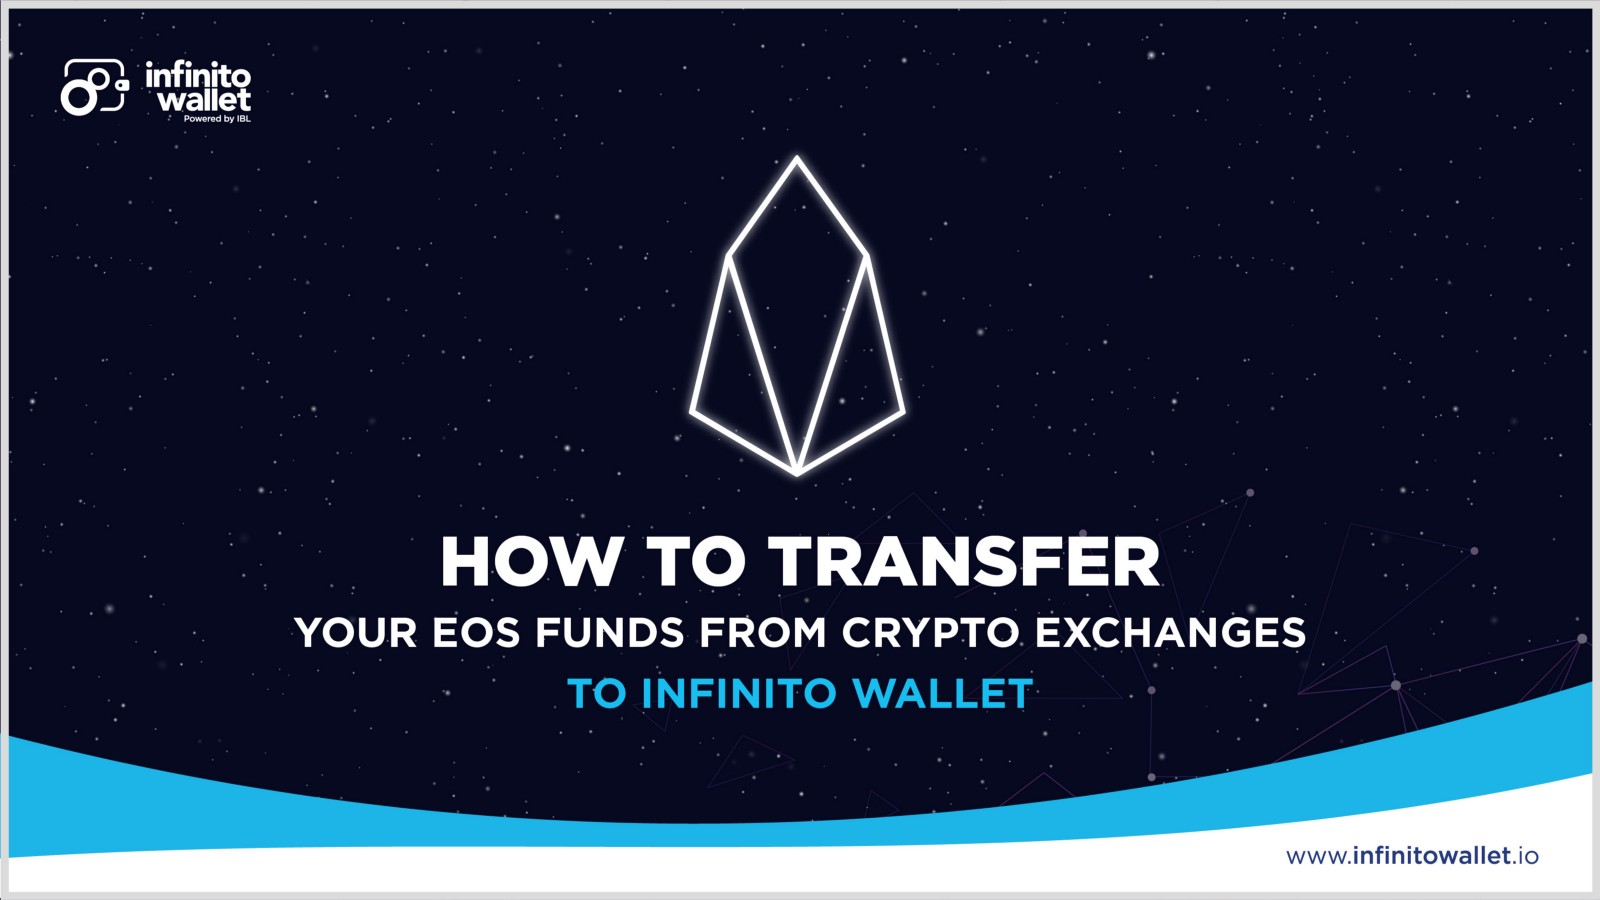 Guide How To Transfer Your Eos Funds From Crypto Exchanges To